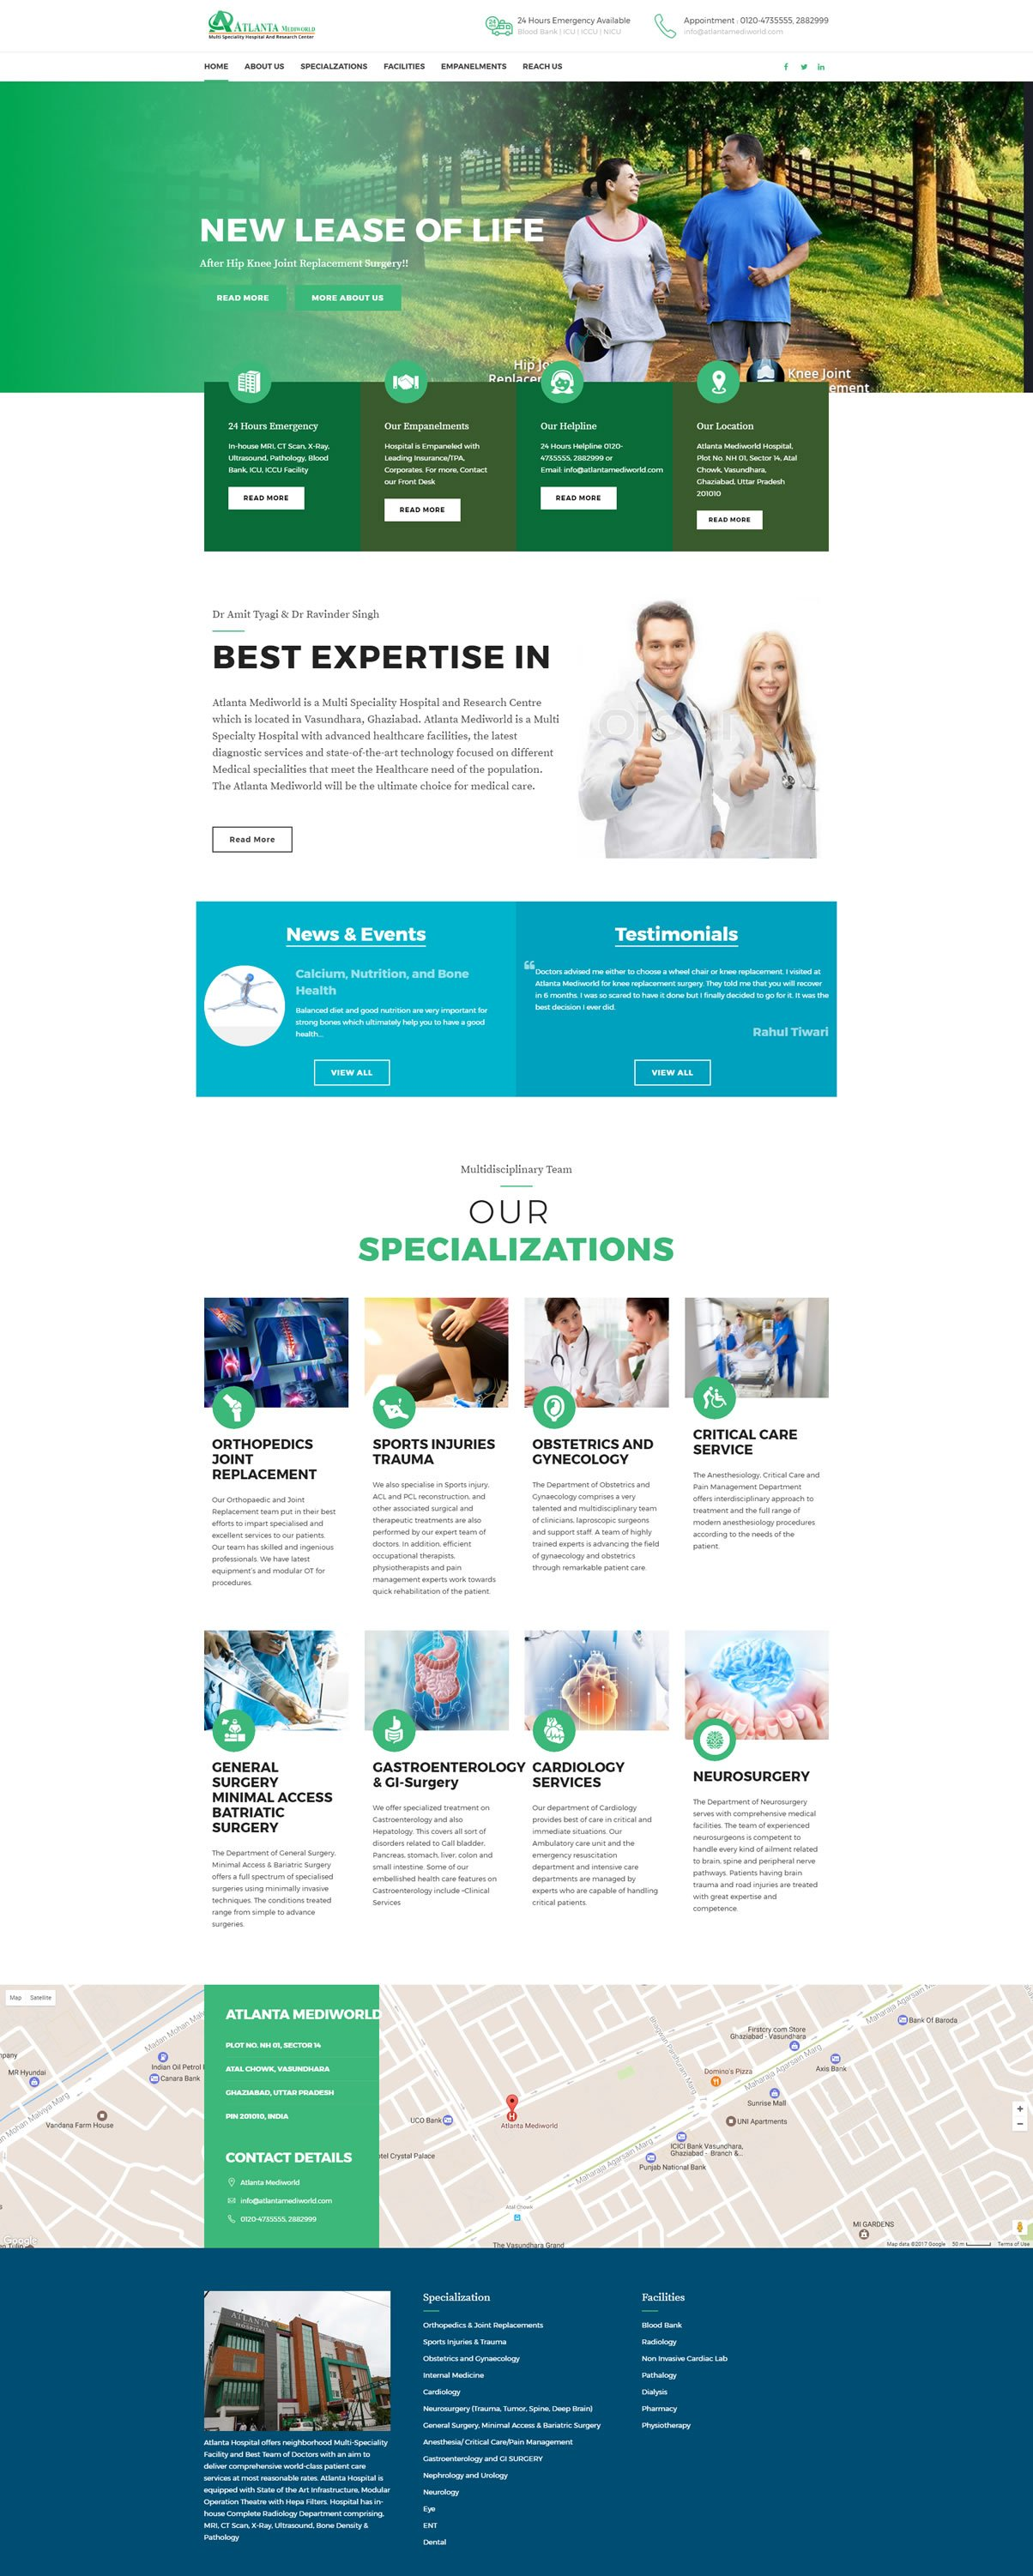 Hospital-website-designing-company